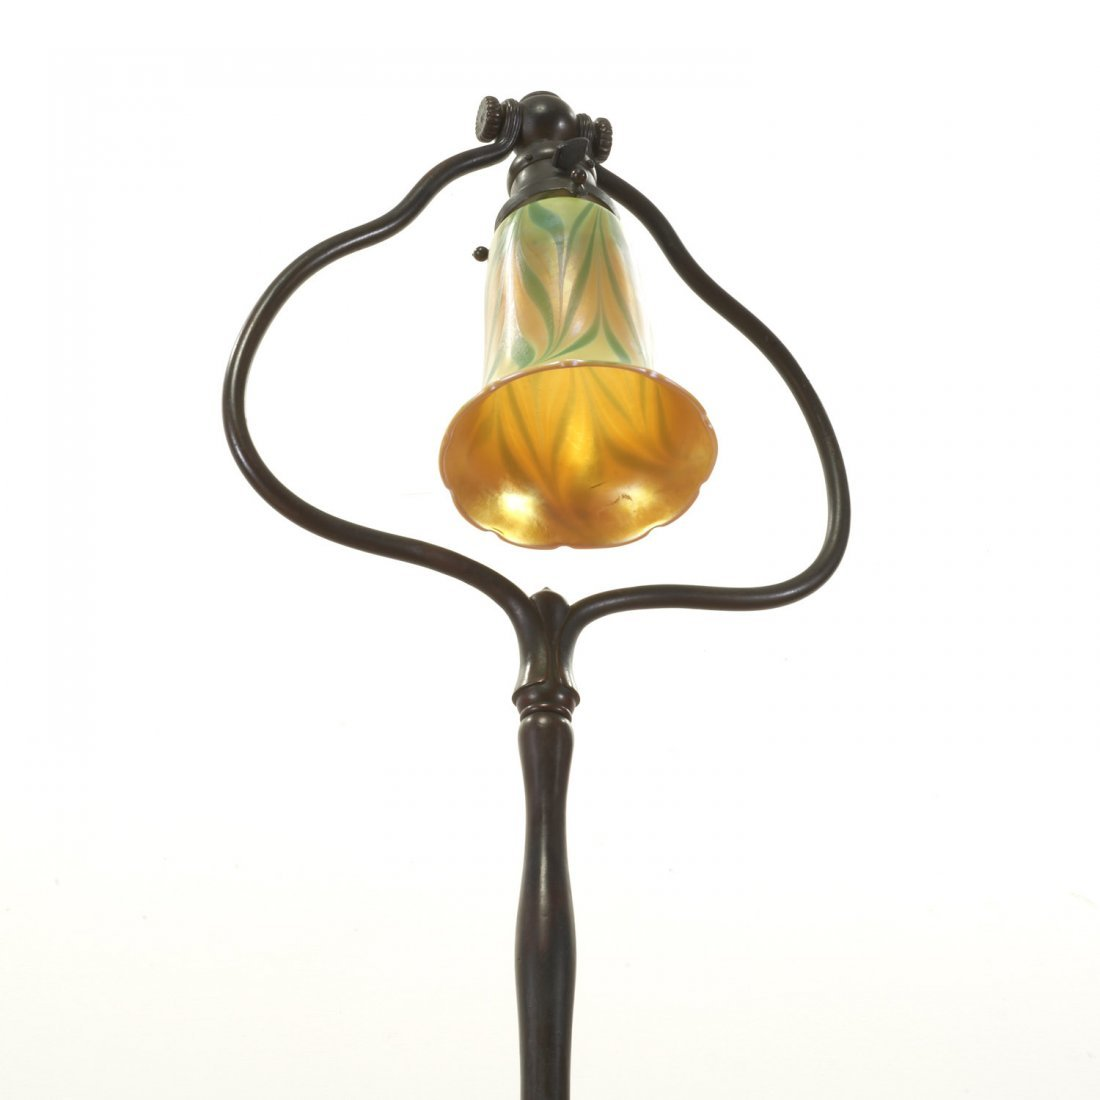 Tiffany style bronze harp and favrile floor lamp - 5